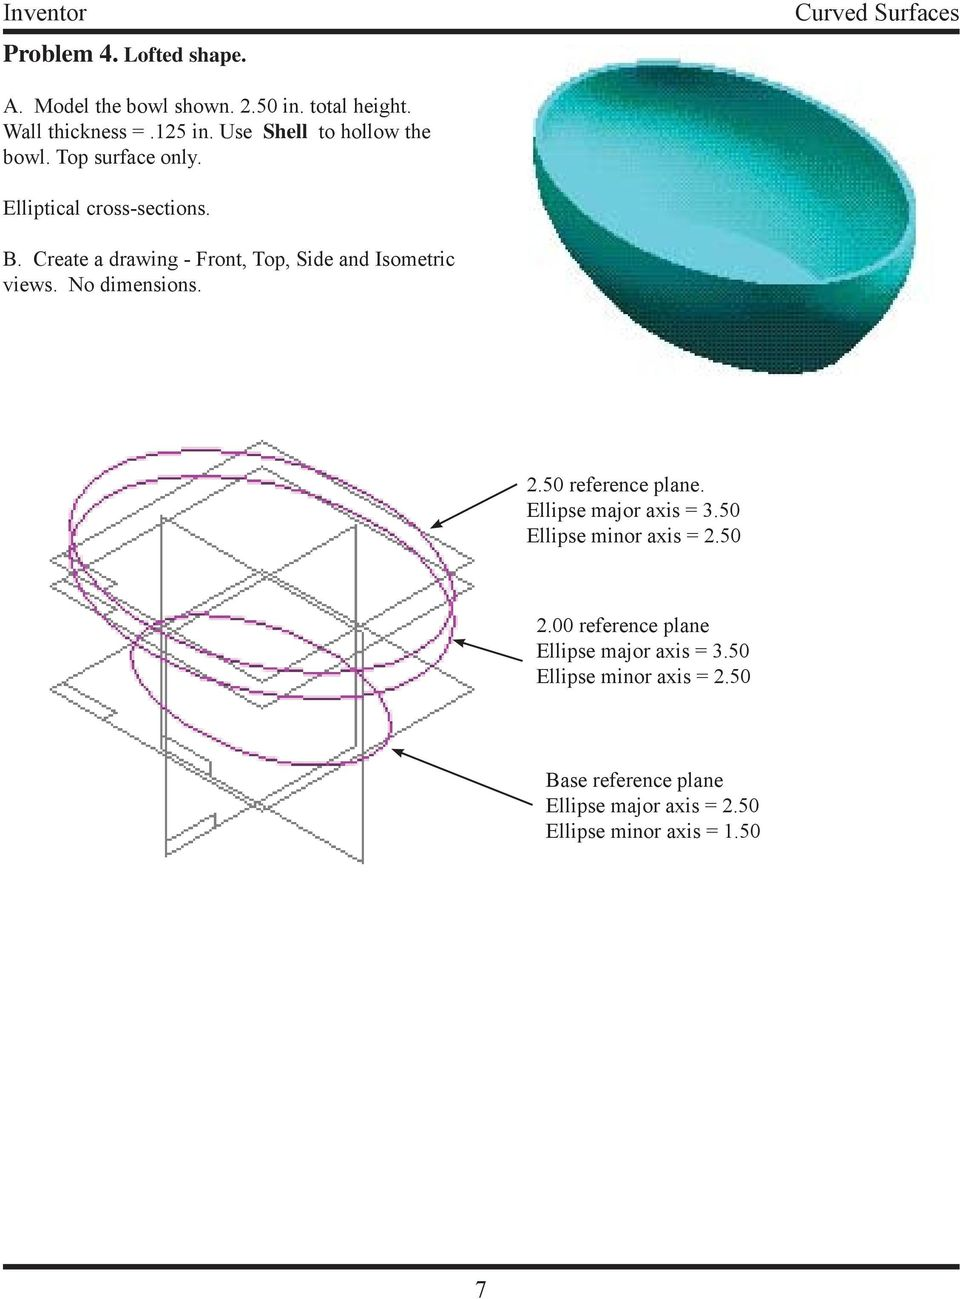 Create a drawing - Front, Top, Side and Isometric views. No dimensions. 2.50 reference plane. Ellipse major axis = 3.